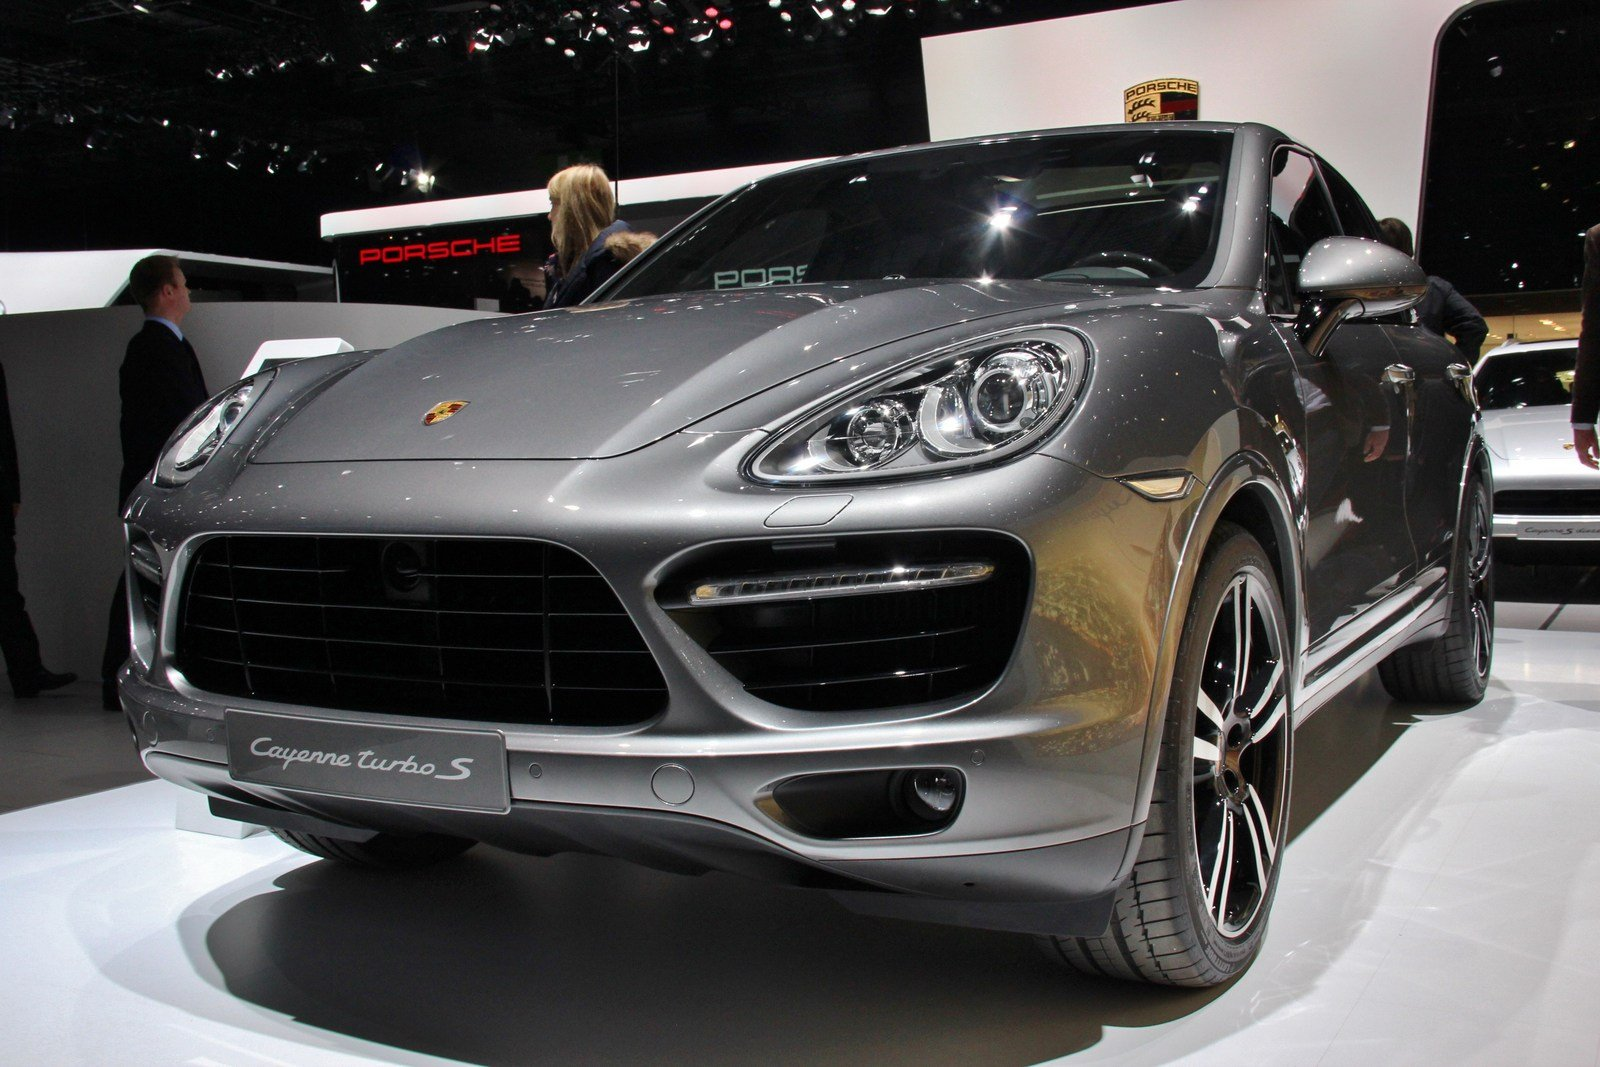 2013 porsche cayenne turbo s picture 497292 car review top speed. Black Bedroom Furniture Sets. Home Design Ideas